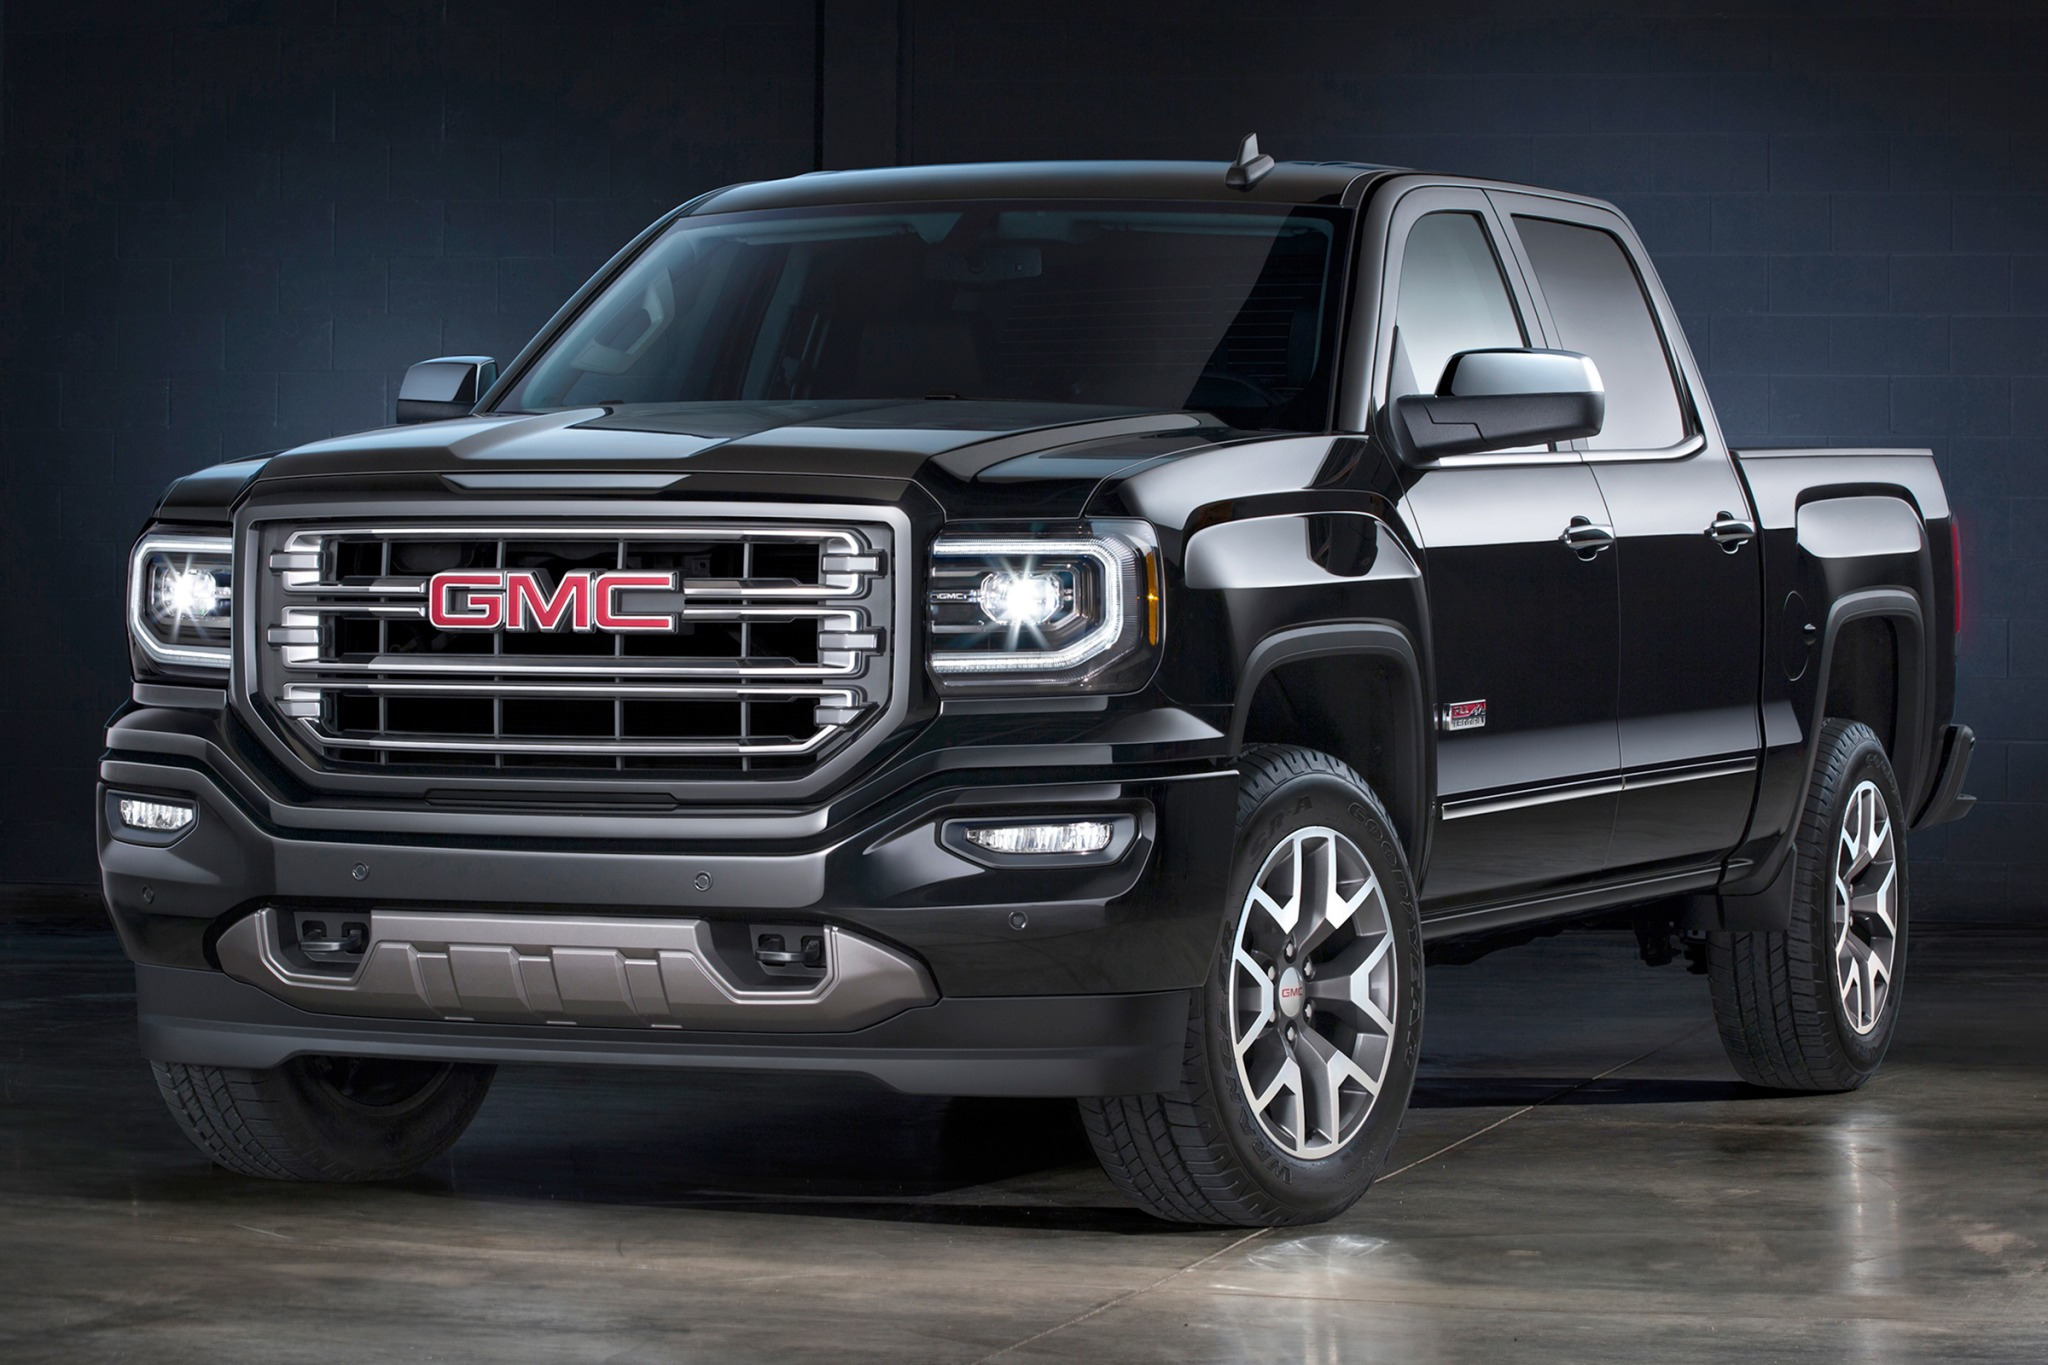 2017 GMC Sierra Hybrid Crew Cab photo - 1